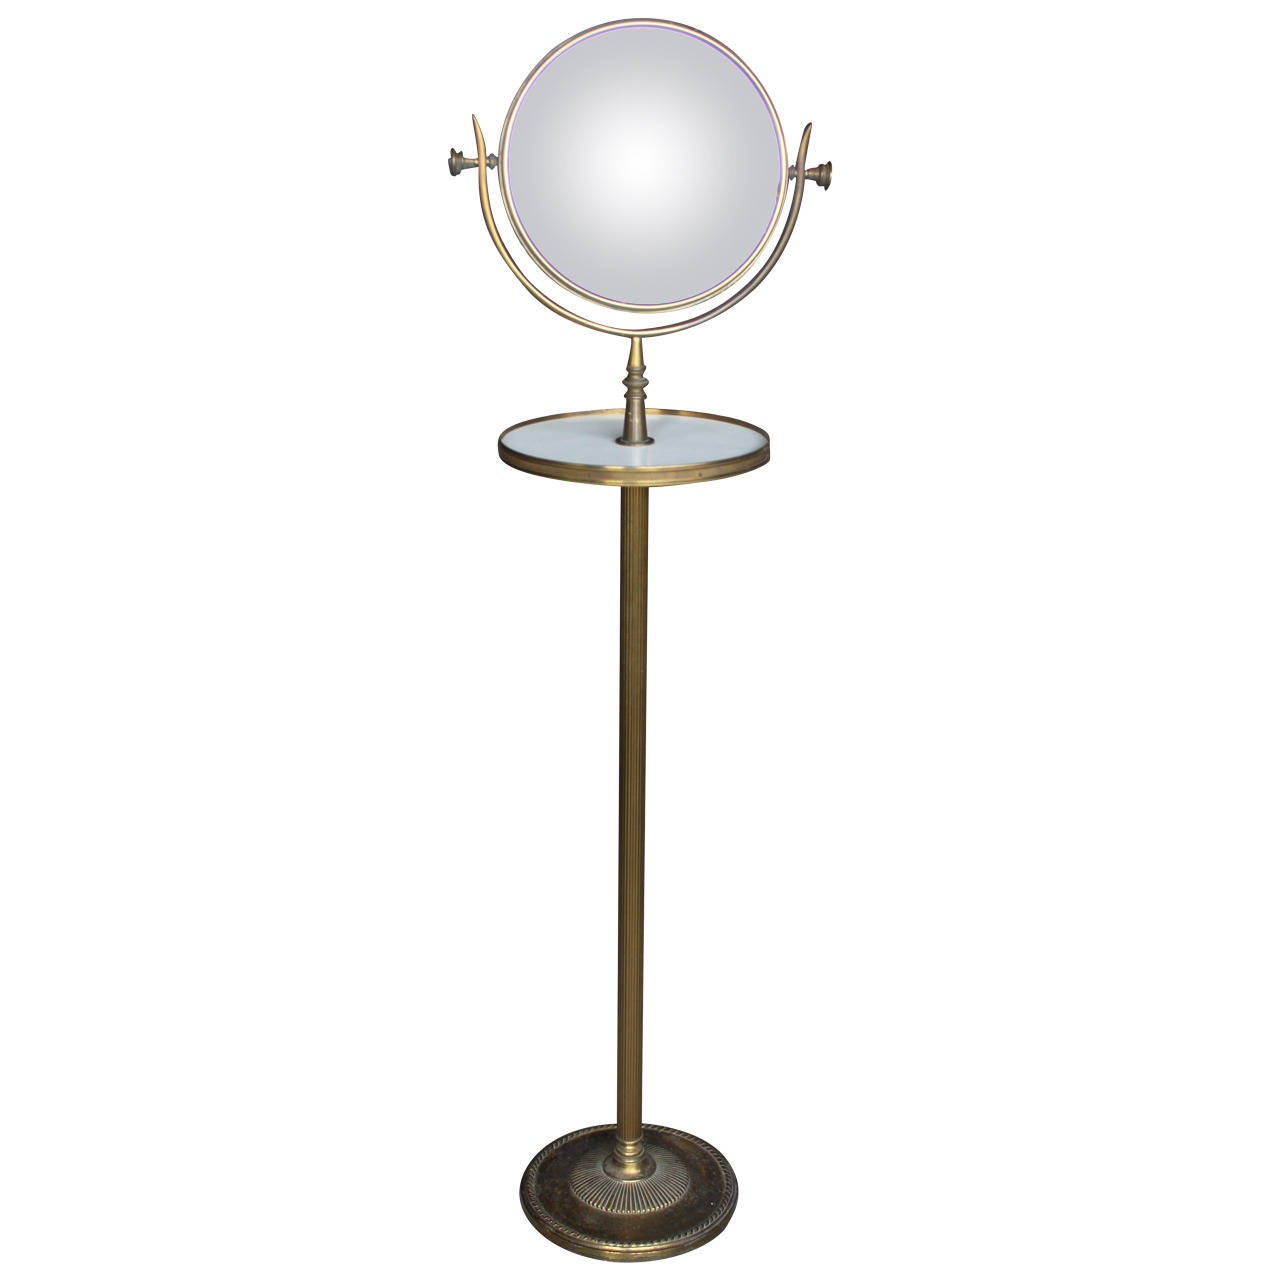 Brass vanity mirror stand for sale at 1stdibs for Mirror stand